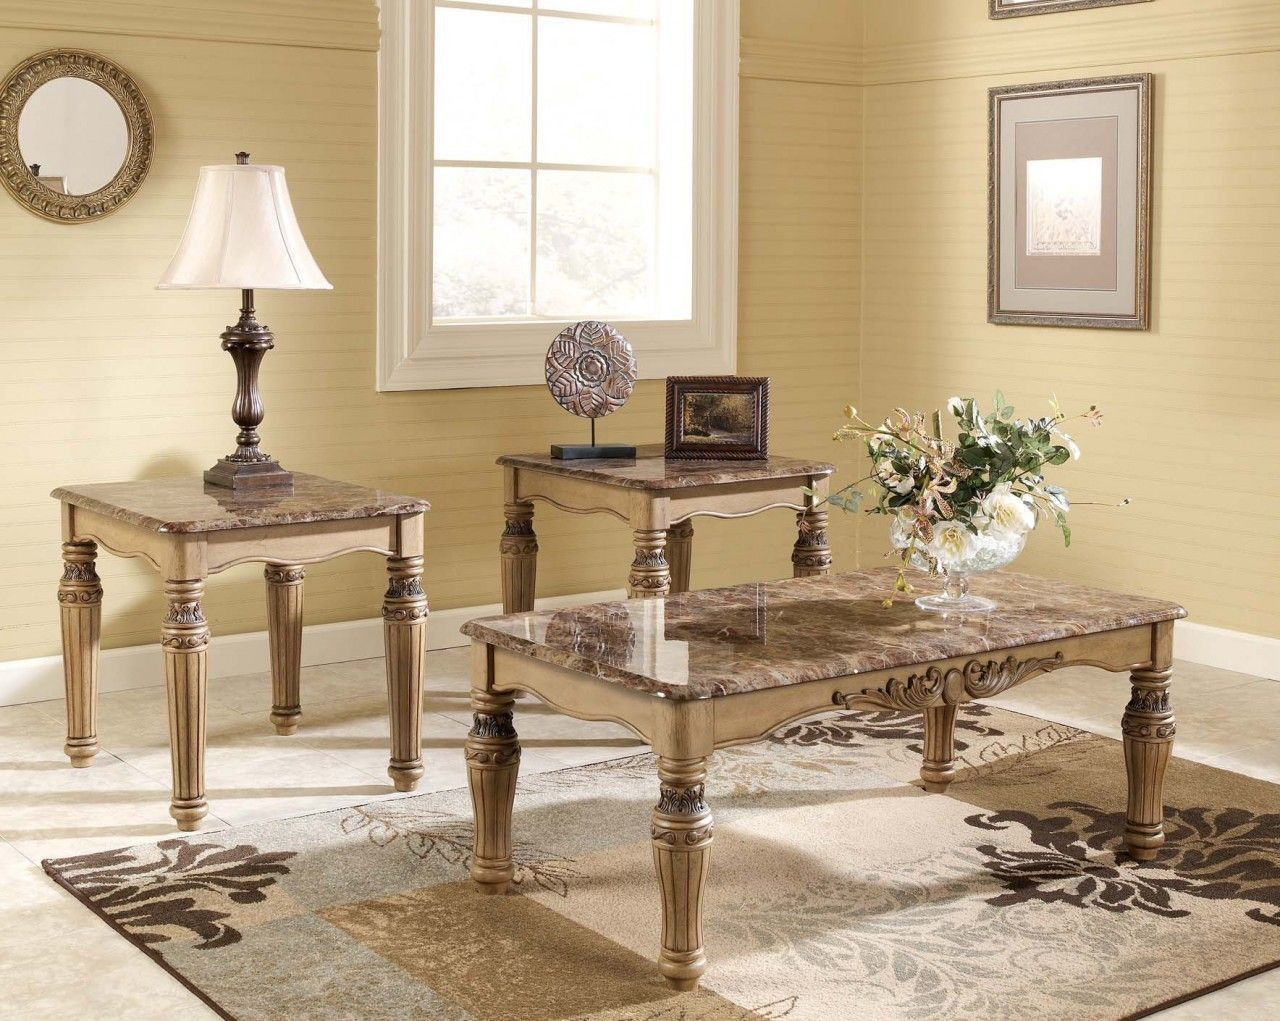 My Furniture Place Ashley T537 Coffee Table Set 289 00 Http Www Myfurniturepla Marble Tables Living Room Occasional Table Living Room Design Inspiration [ 1021 x 1280 Pixel ]